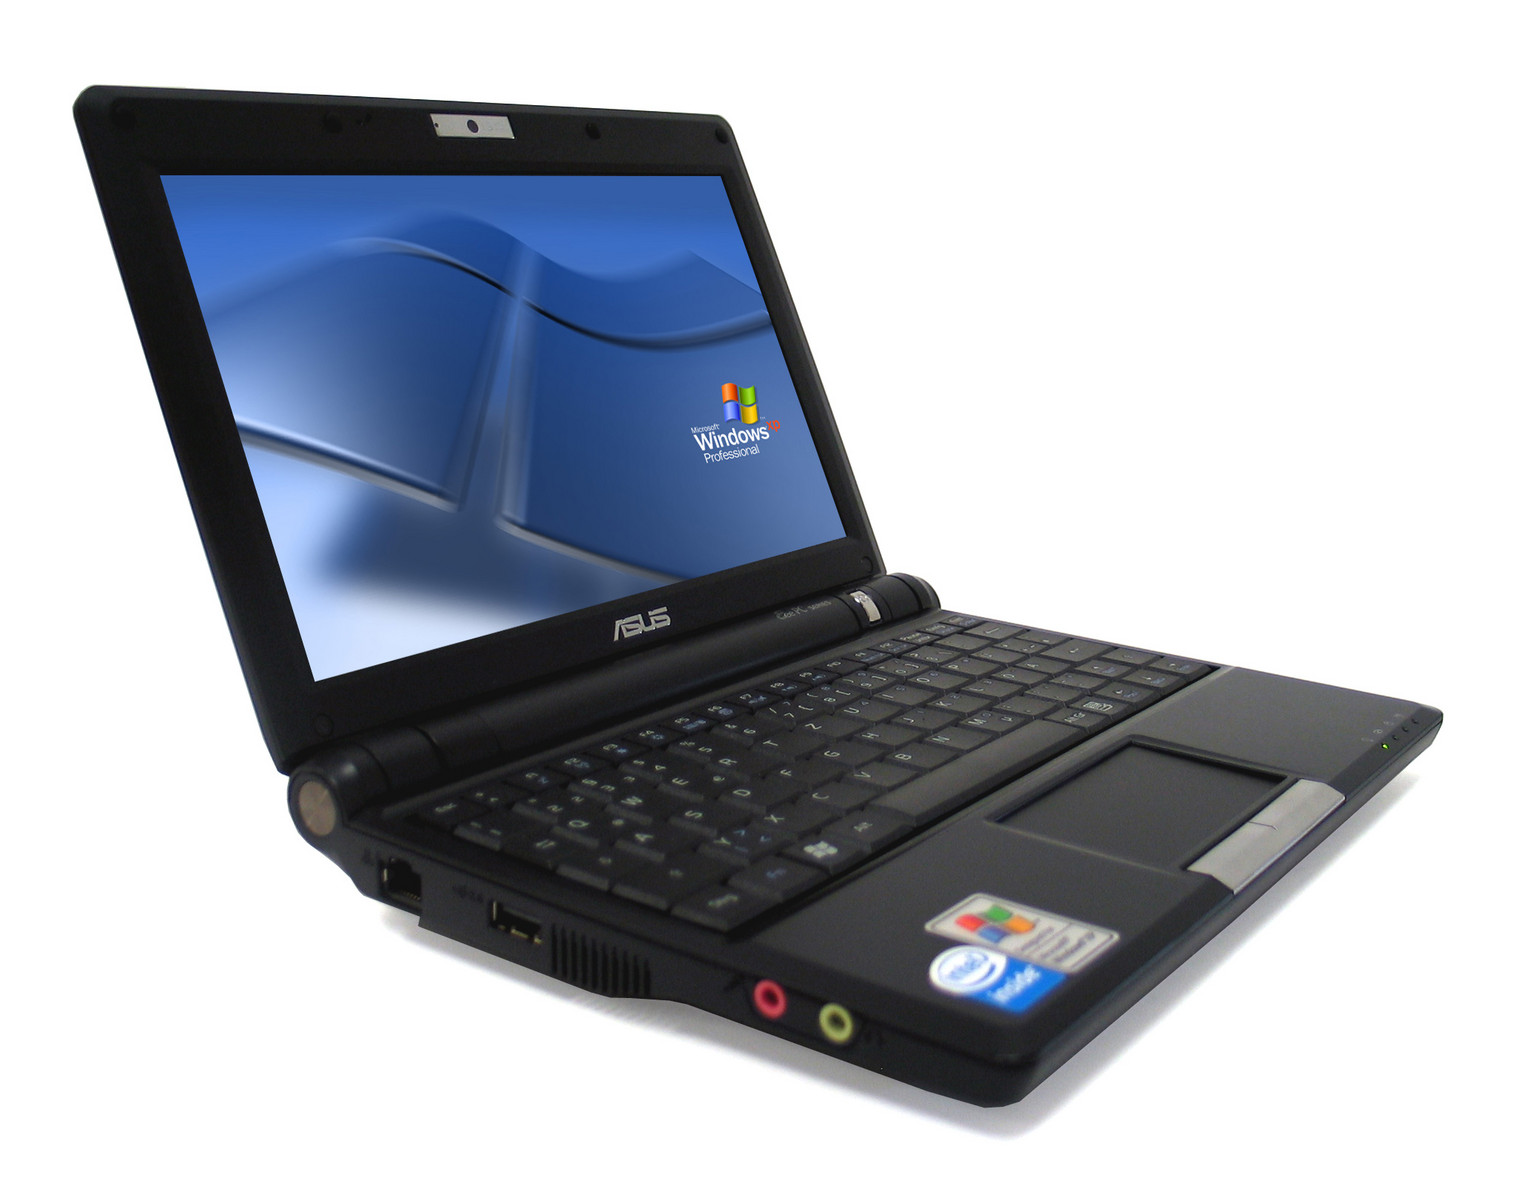 ASUS 900HA/XP EEE PC WINDOWS 8 DRIVER DOWNLOAD